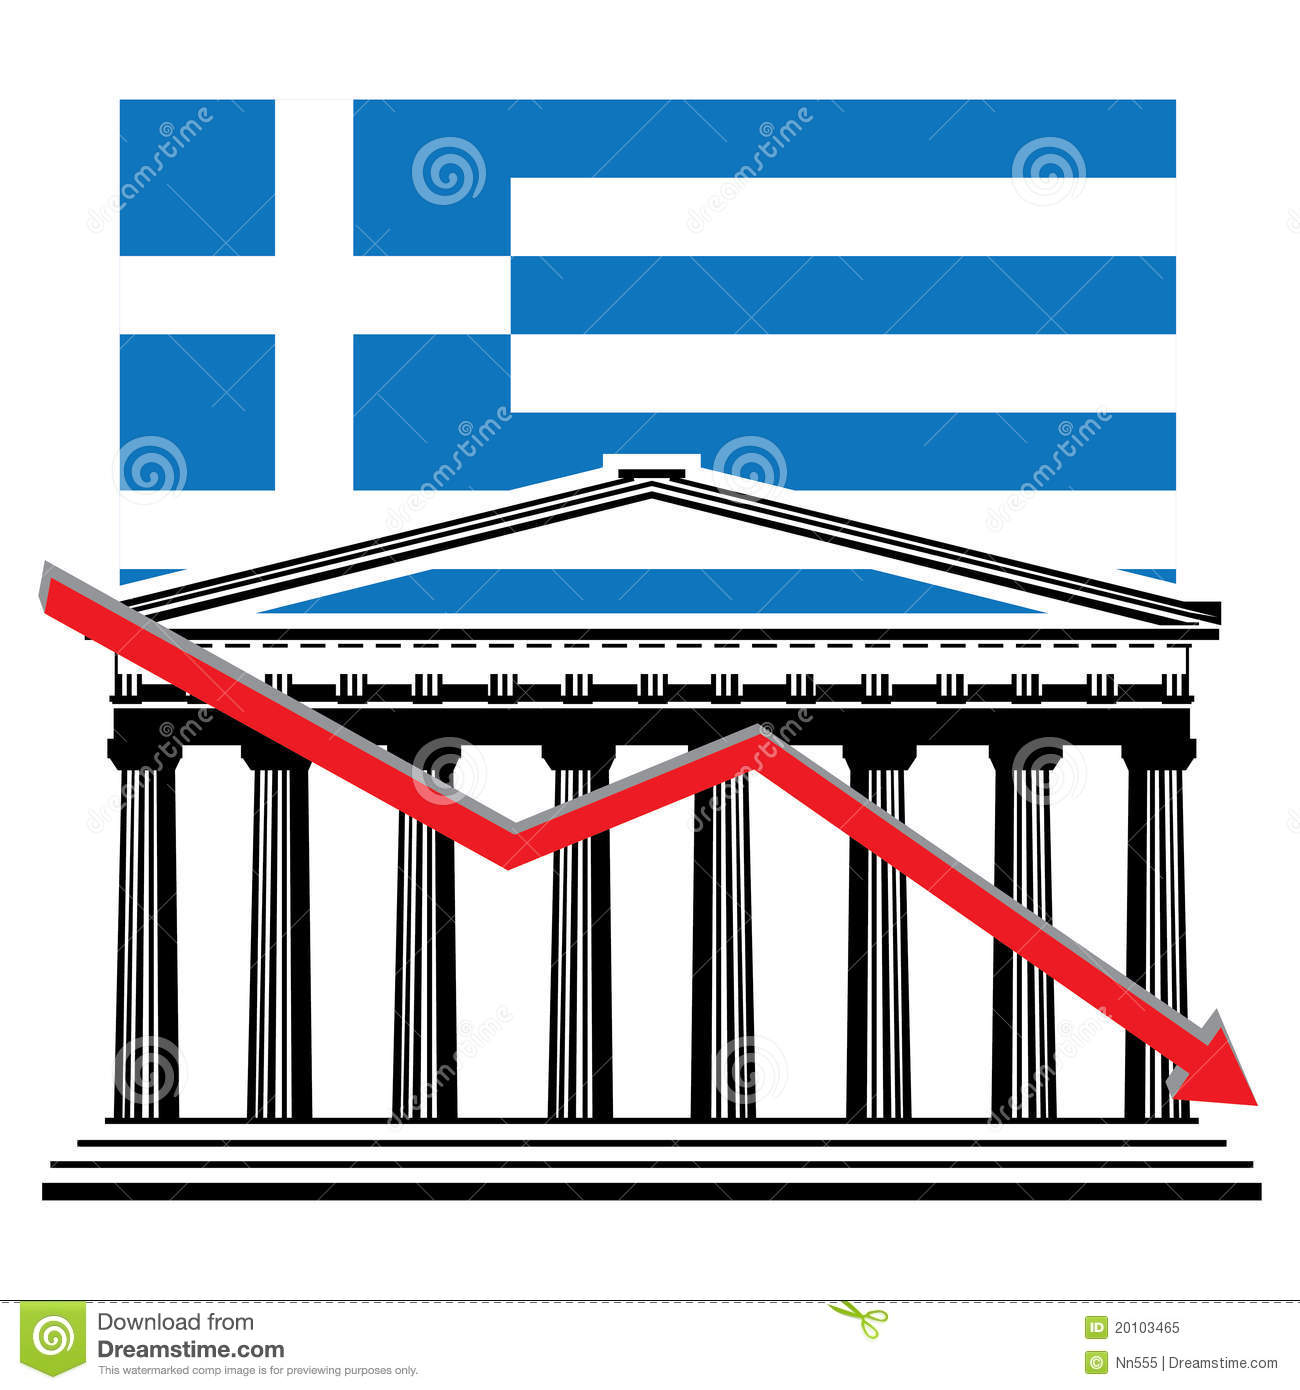 Economic Crisis In Greece